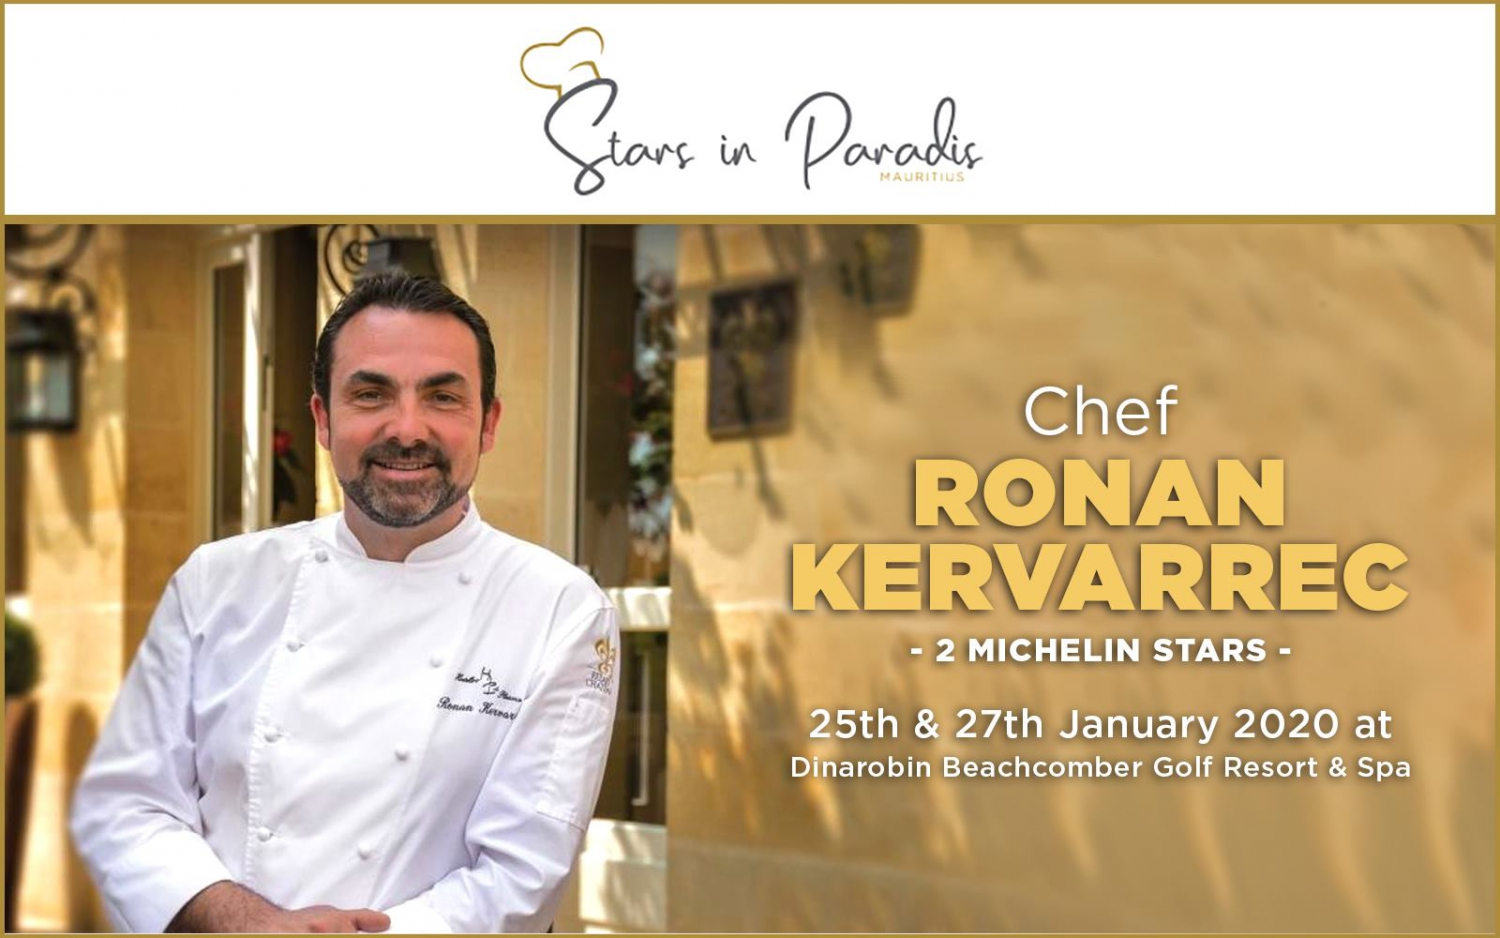 An outstanding gastronomic experience with Chef Ronan Kervarrec